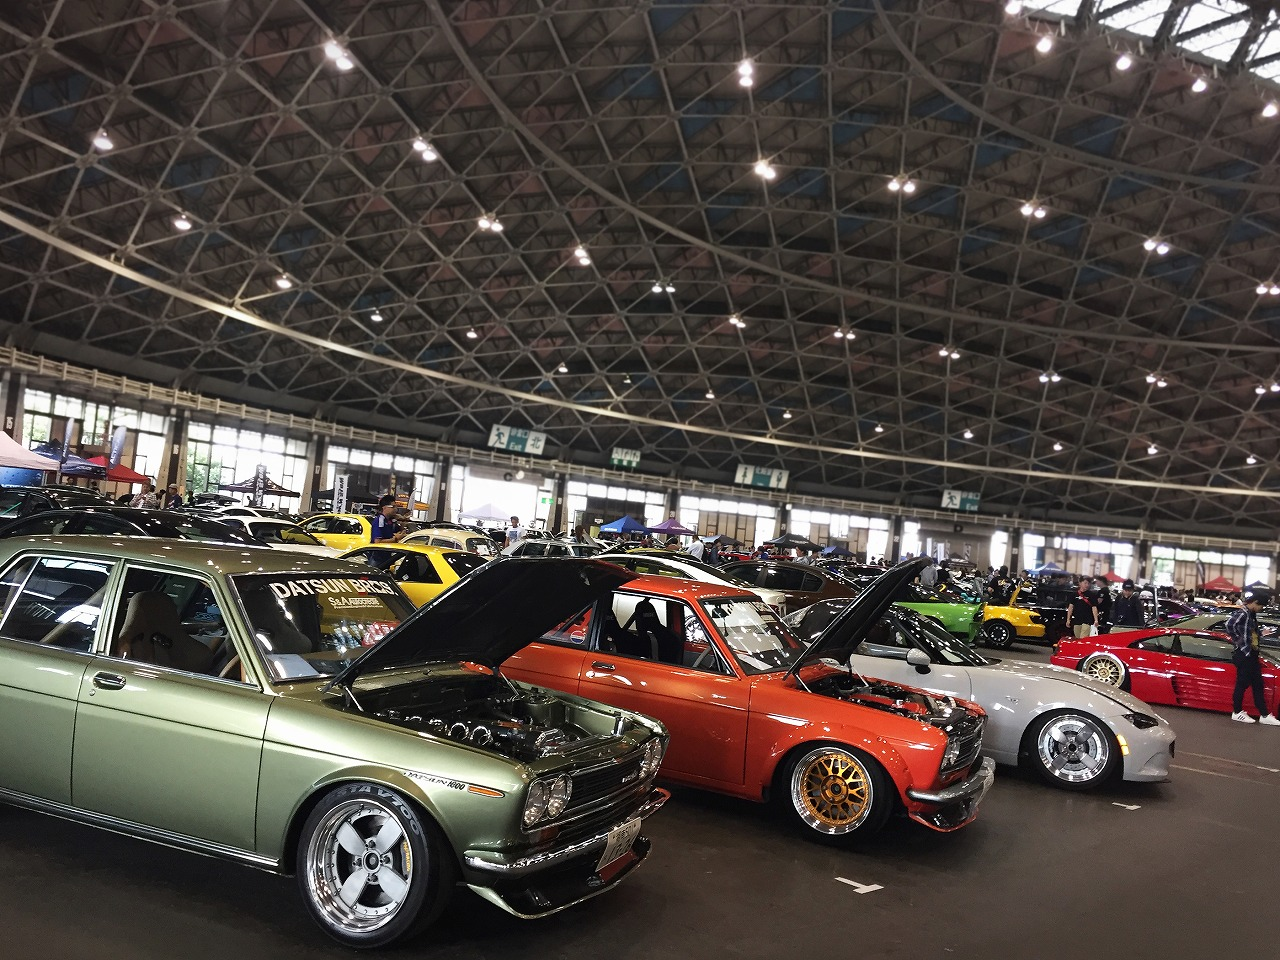 Wekfest usa 2017 japan 名古屋ポートメッセ Air Force Suspension エアサスブース